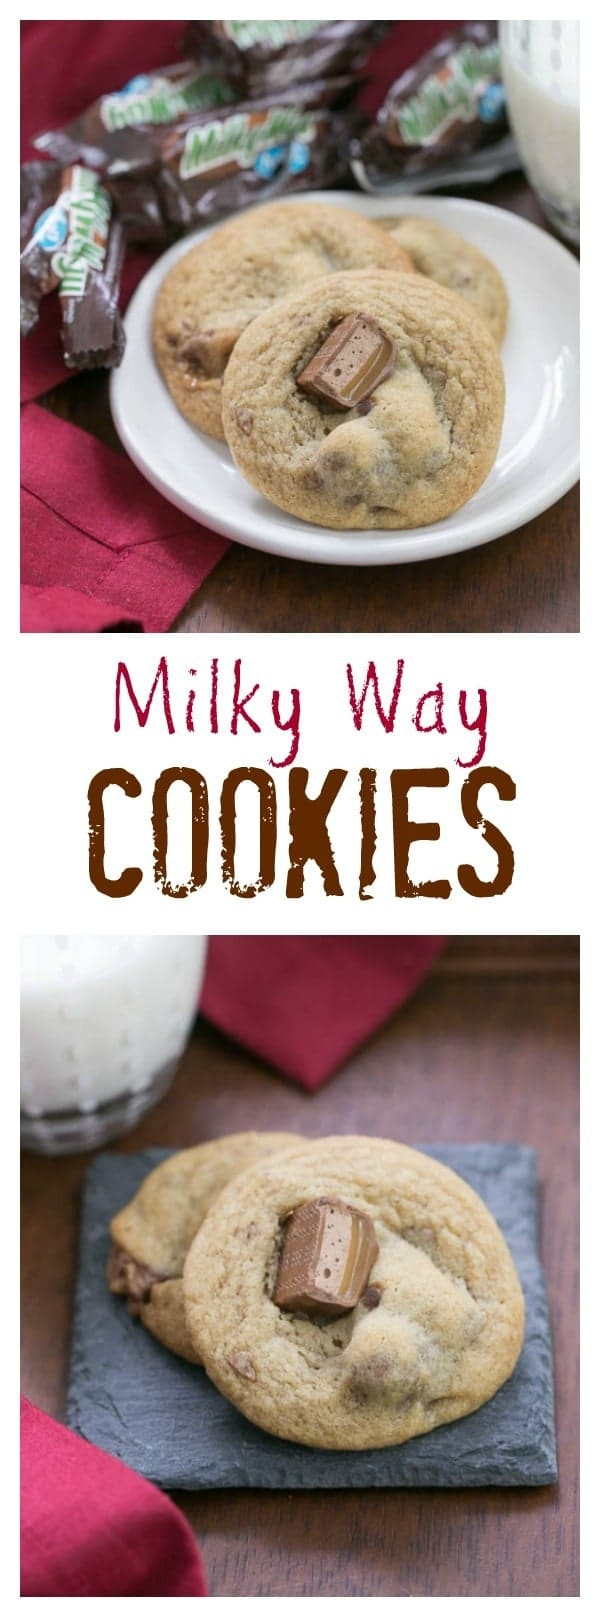 photo collage - Milky Way Cookies on a small white serving plate and cookies on a stone coaster.